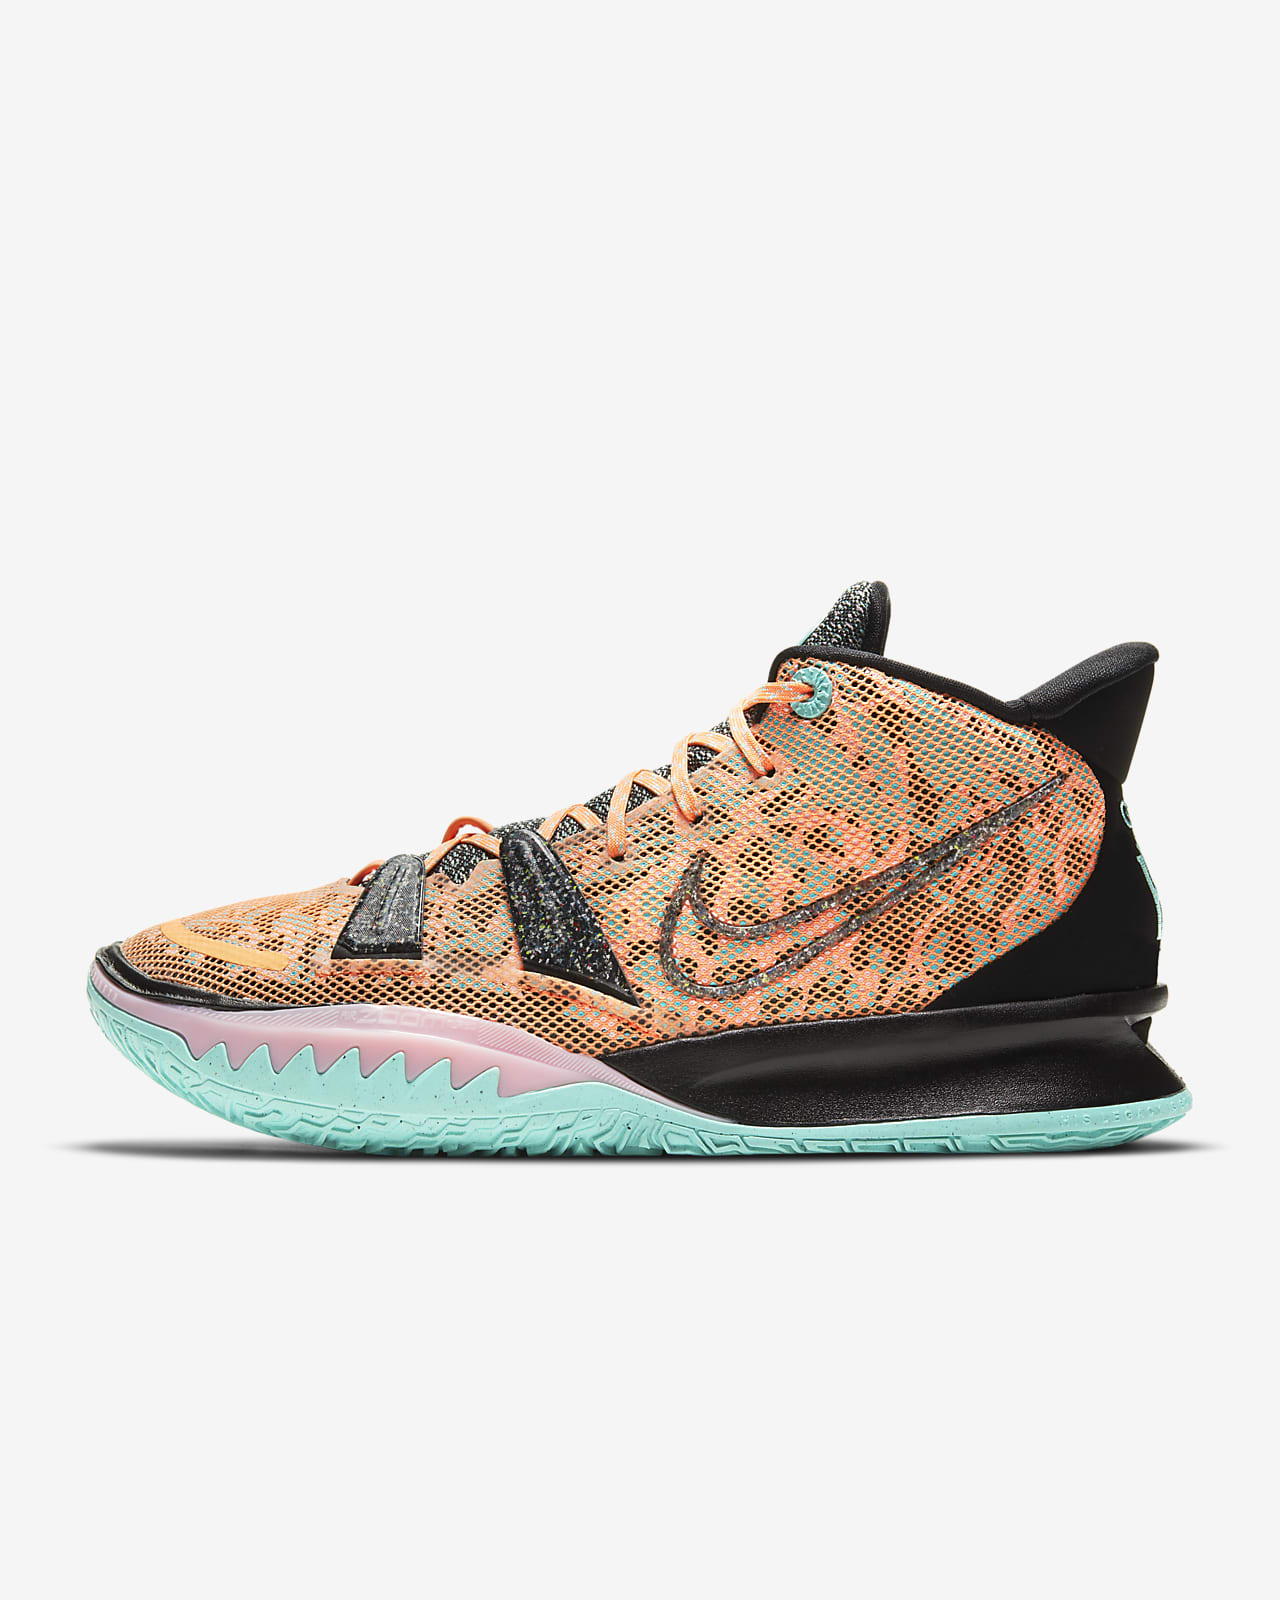 Chaussure de basketball Kyrie 7 « Play for the Future »